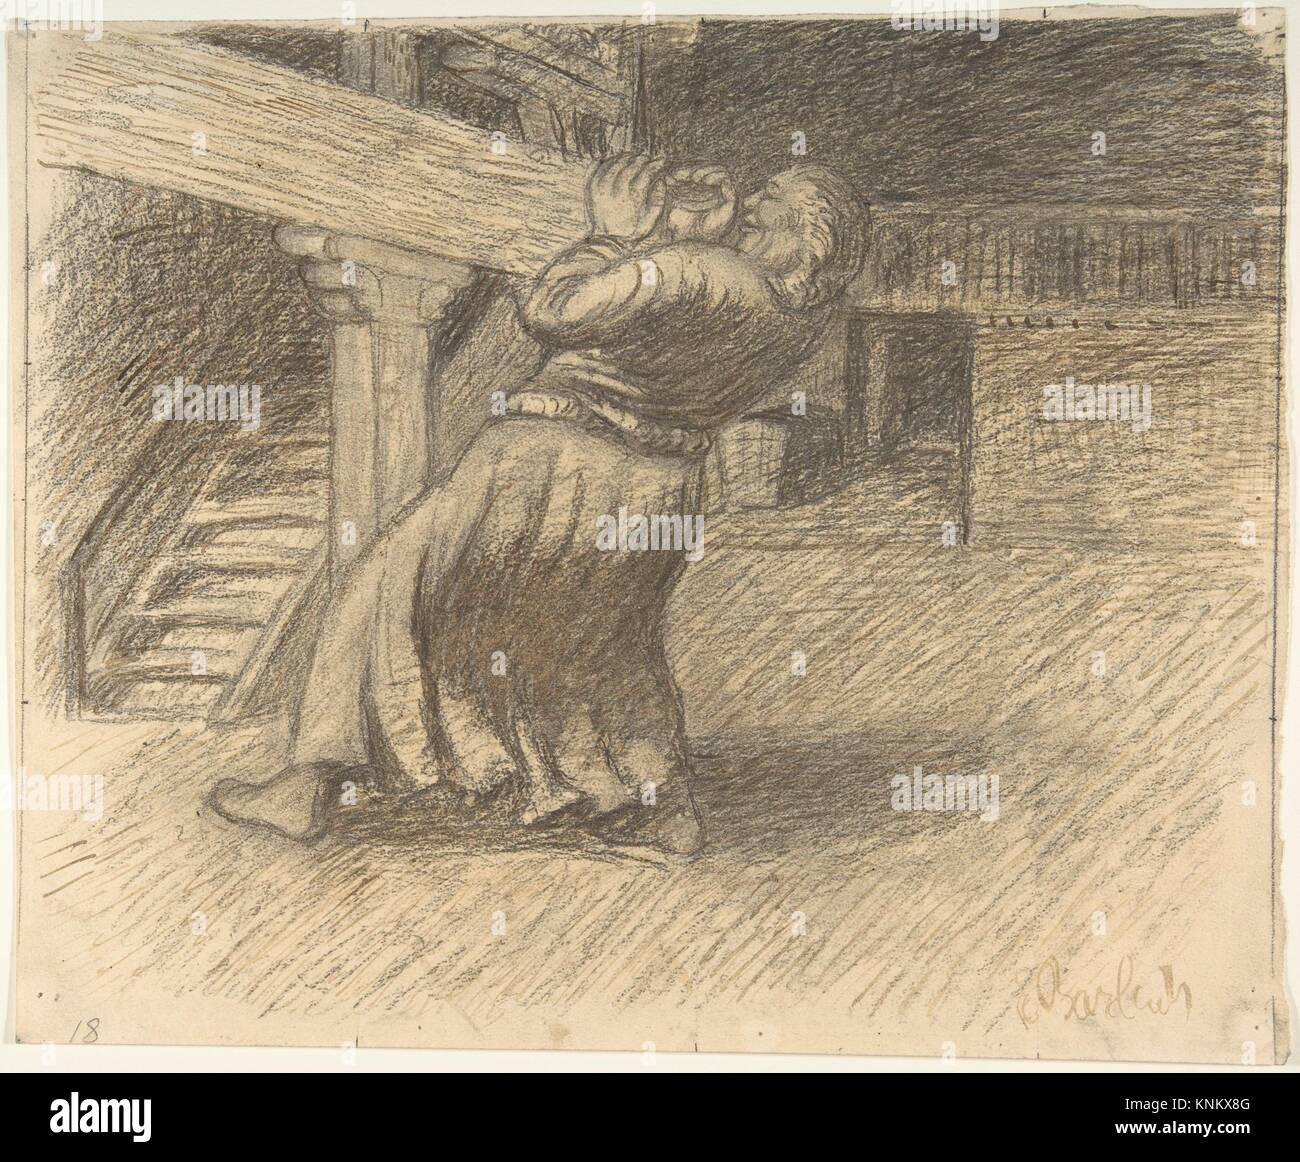 The Invisible. Artist: Ernst Barlach (German, Wedel 1870-1938 Rostock); Date: late 19th-mid-20th century; Medium: - Stock Image